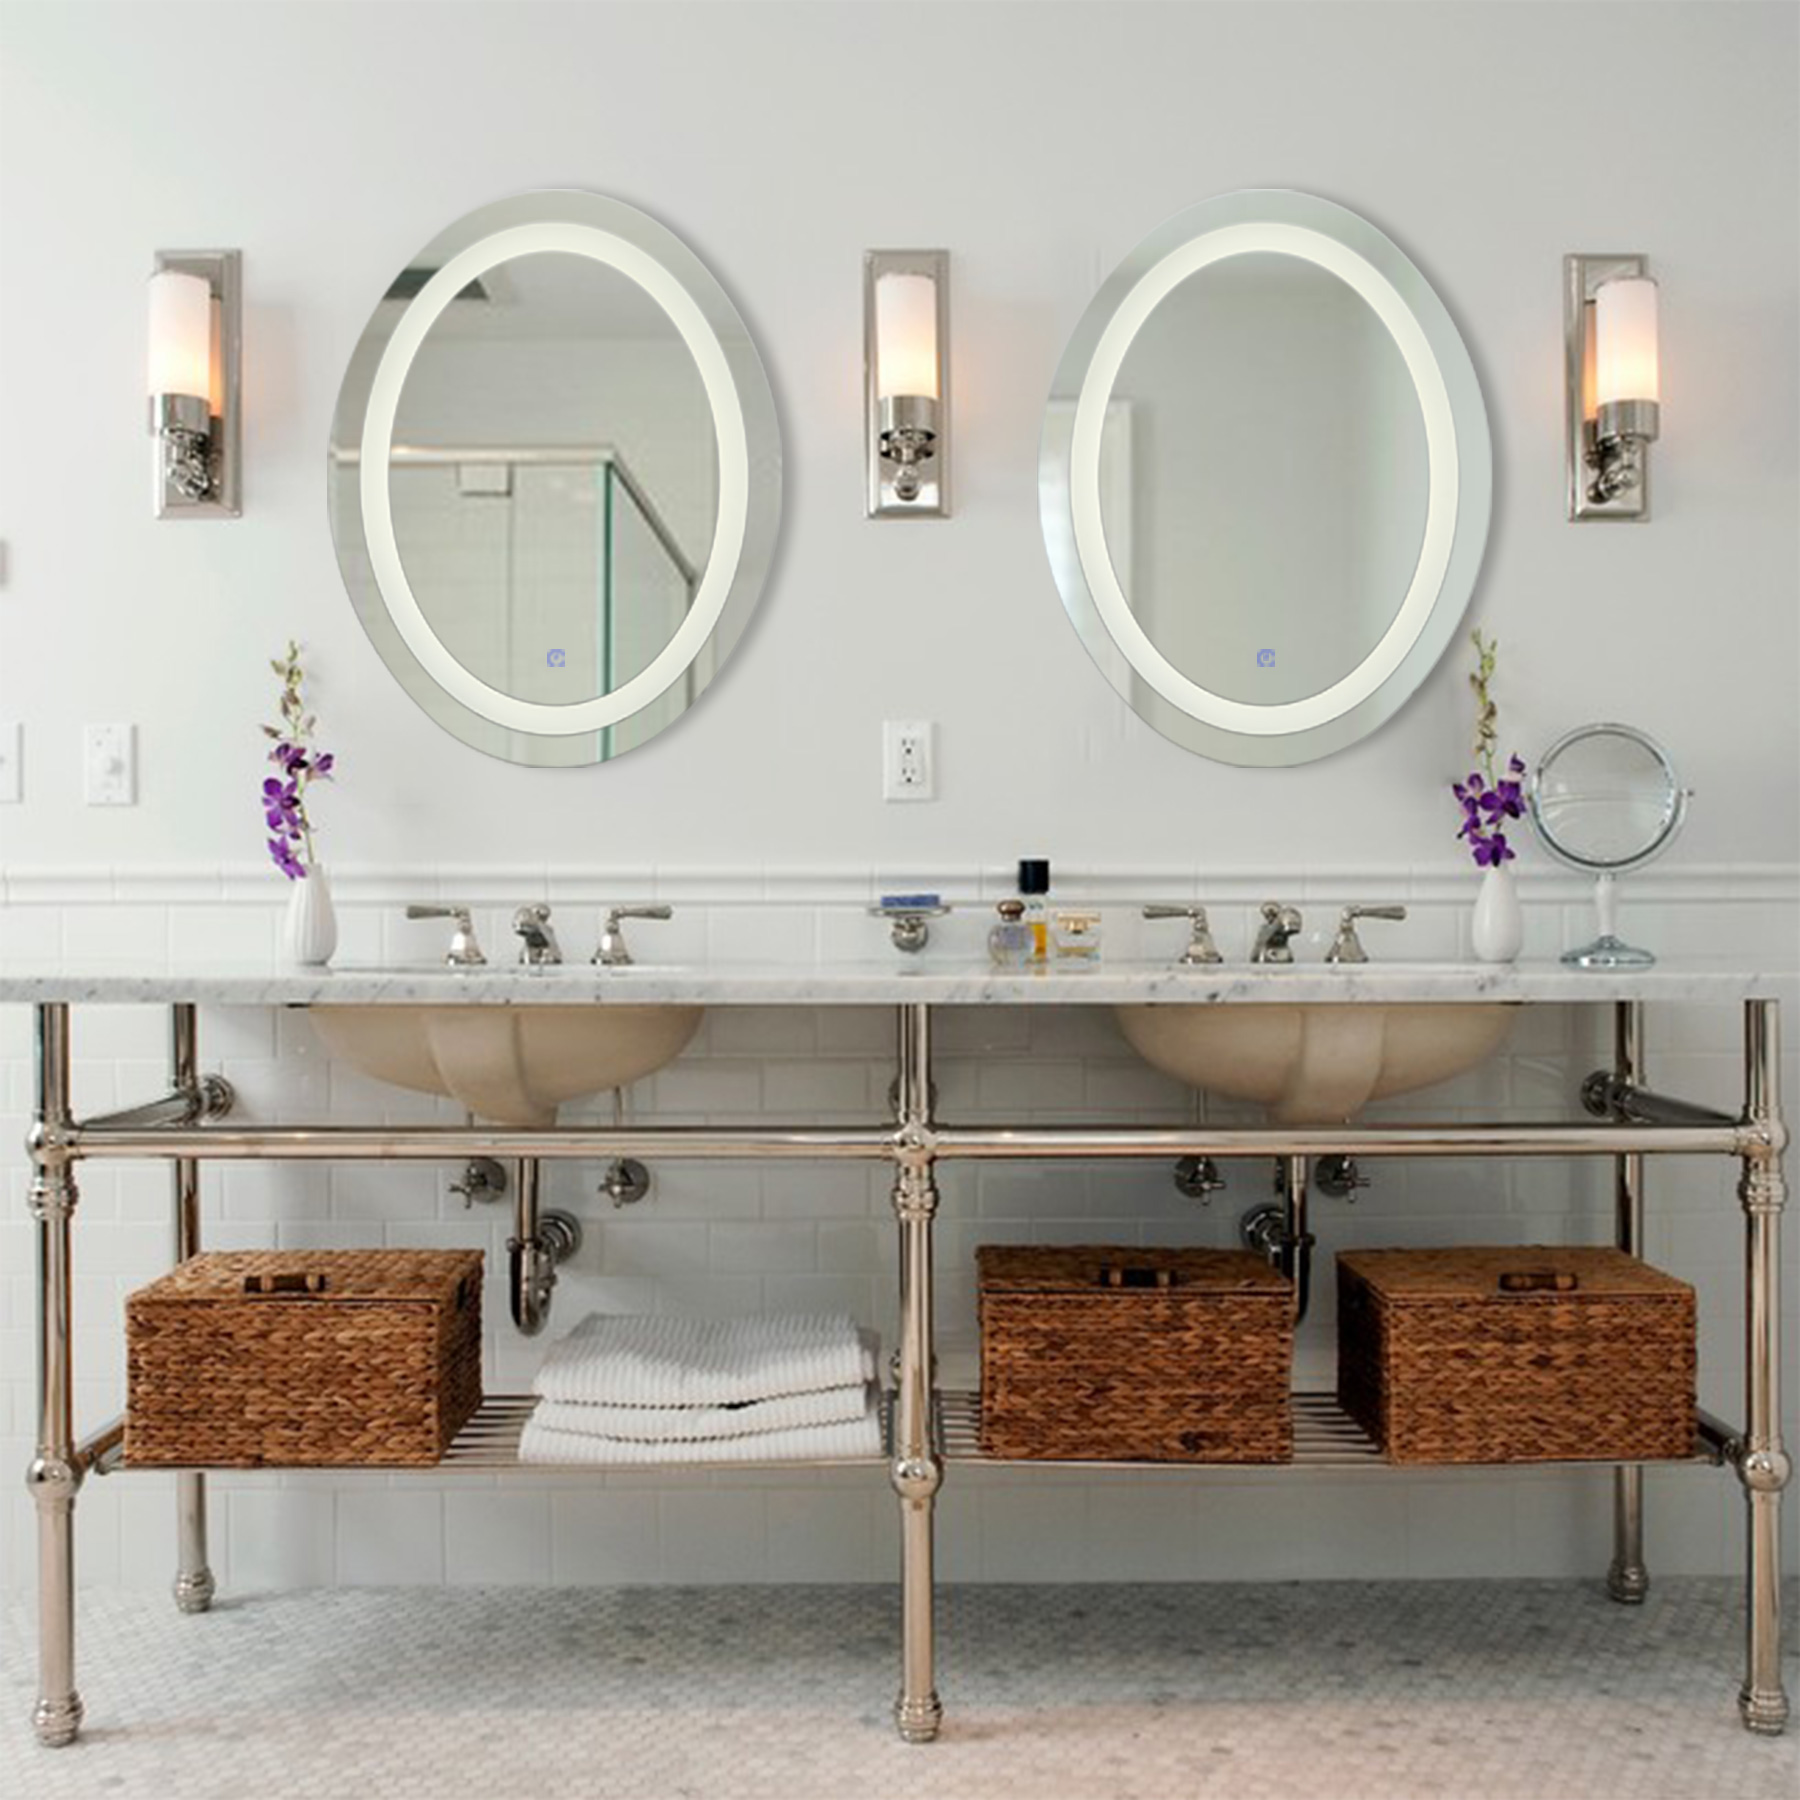 Charmant L22u0027u0027x H28u0027u0027 Dimmable Oval LED Lighted Bathroom Mirror, Modern Wall Mirror  With Dimmer And Lights, Wall Mounted Fogless Makeup Vanity Mirror Over ...